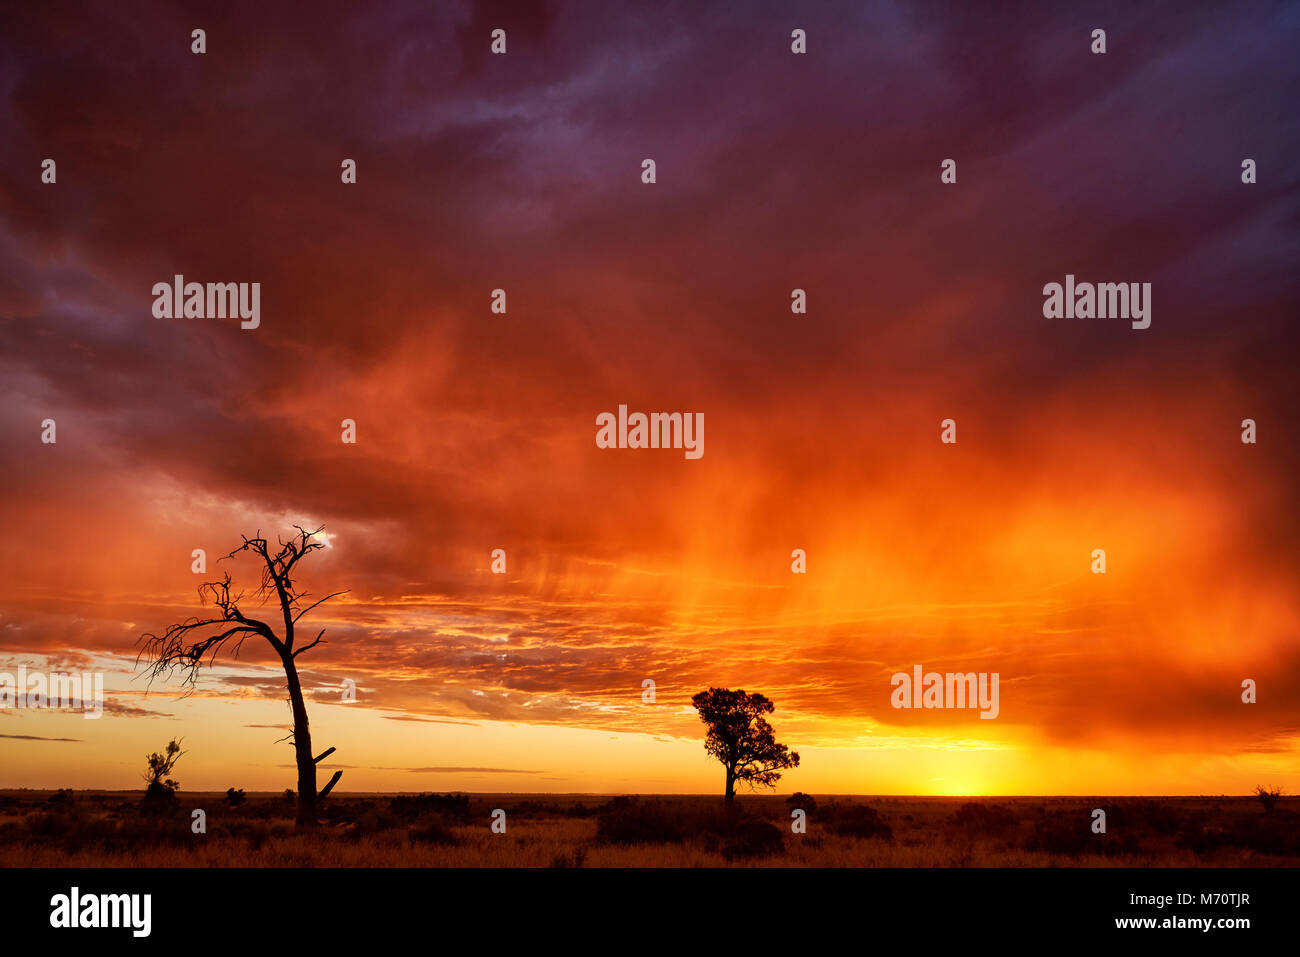 Edge of weather system moving over North Western Victoria at sunset. - Stock Image